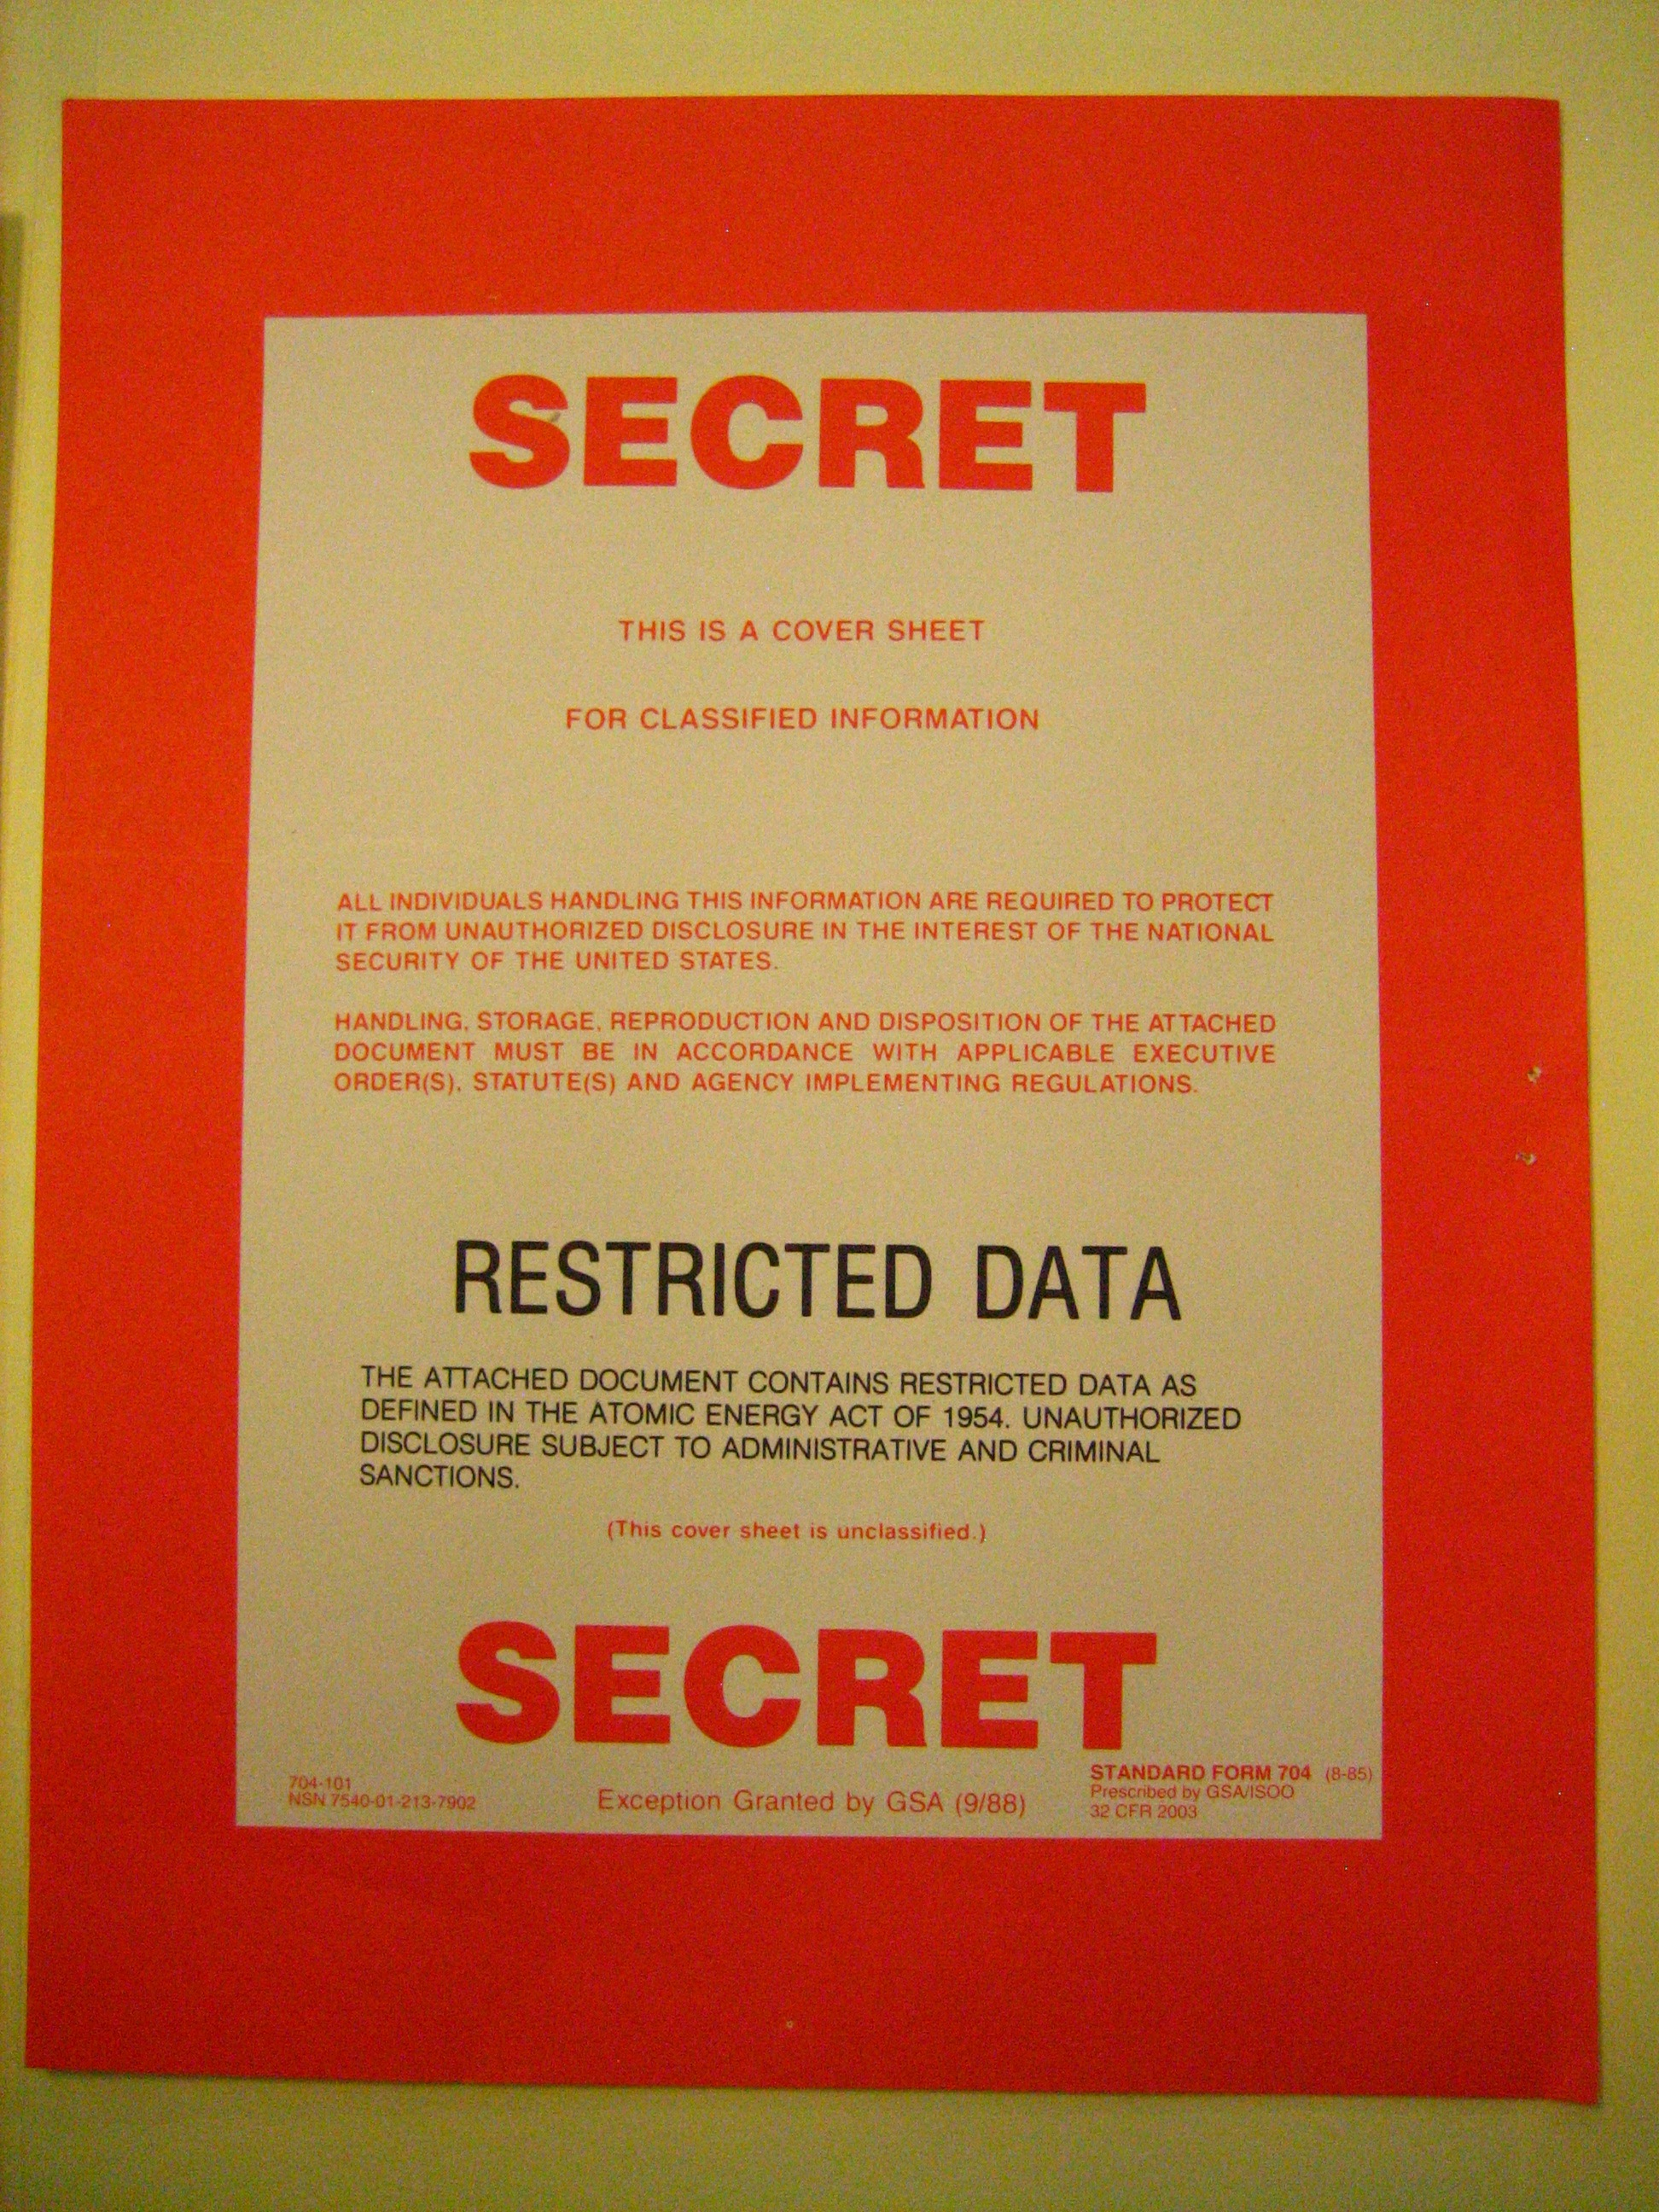 file secret restricted data cover sheet 6322546385 jpg